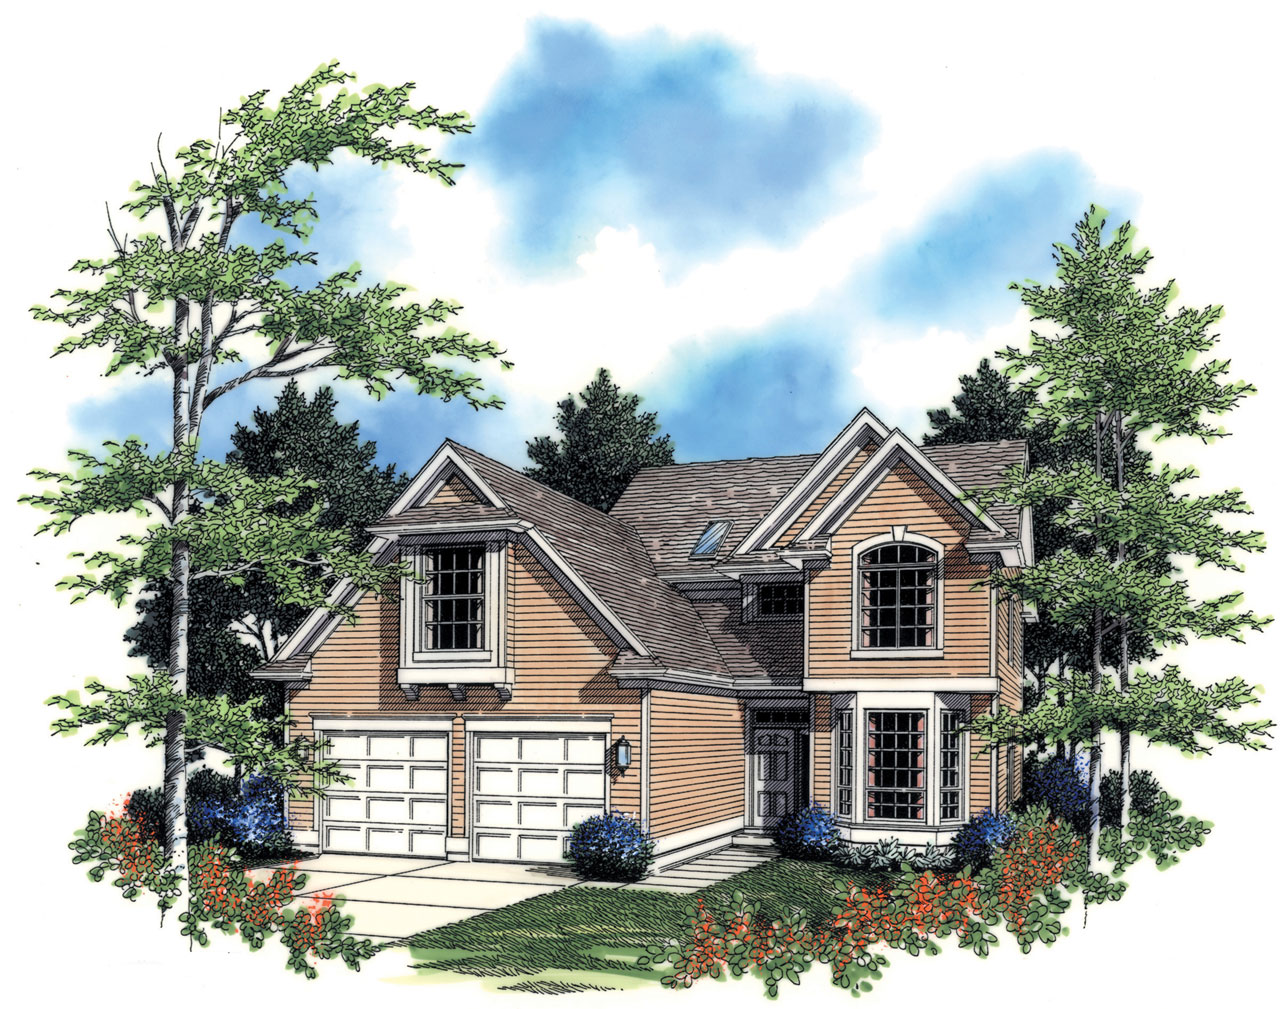 Traditional Style House Plans Plan: 74-577